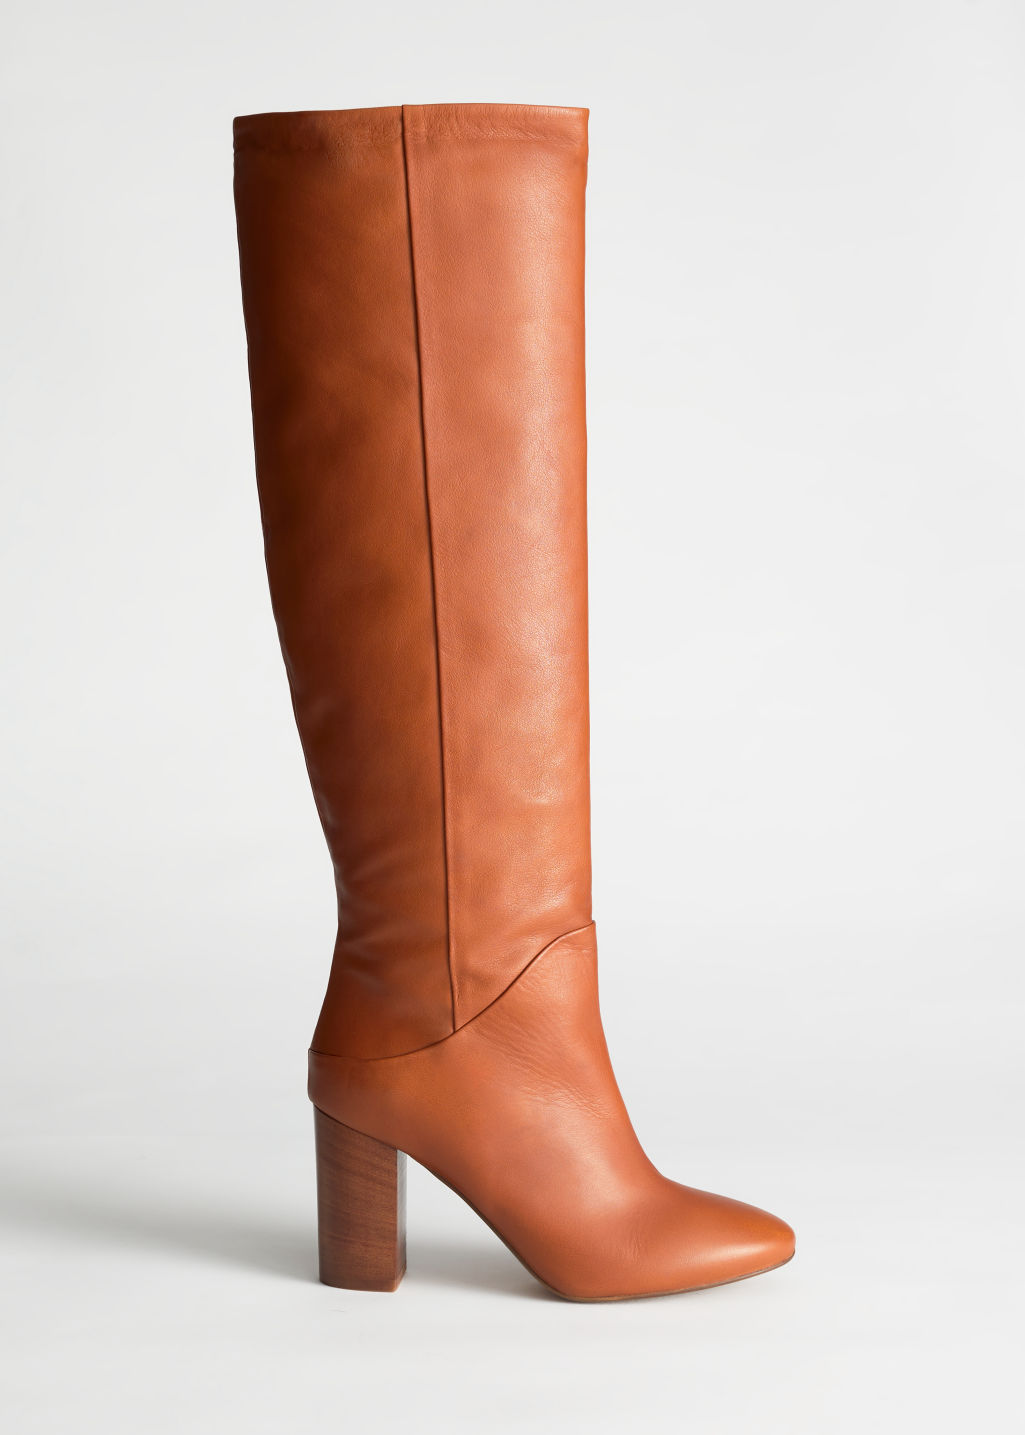 & Other Stories Camel Leather Boots